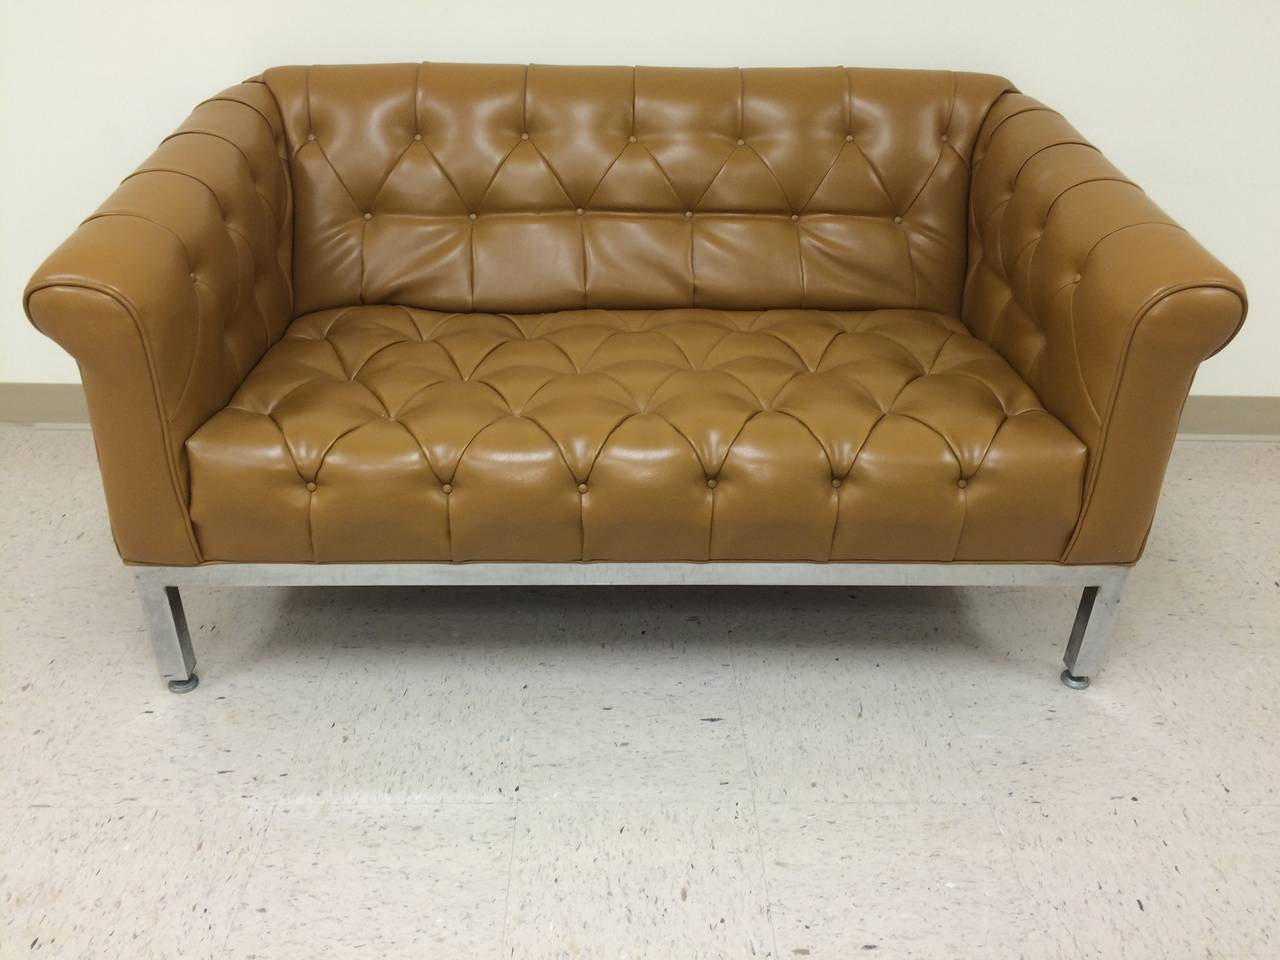 Signed Milo Baughman for Thayer Coggin tufted sofa in vinyl. Beautiful butterscotch color with chrome base, trim and legs. Perfect for office or home. Solid well built piece. Very good condition. Perfect for an office or modern bedroom.